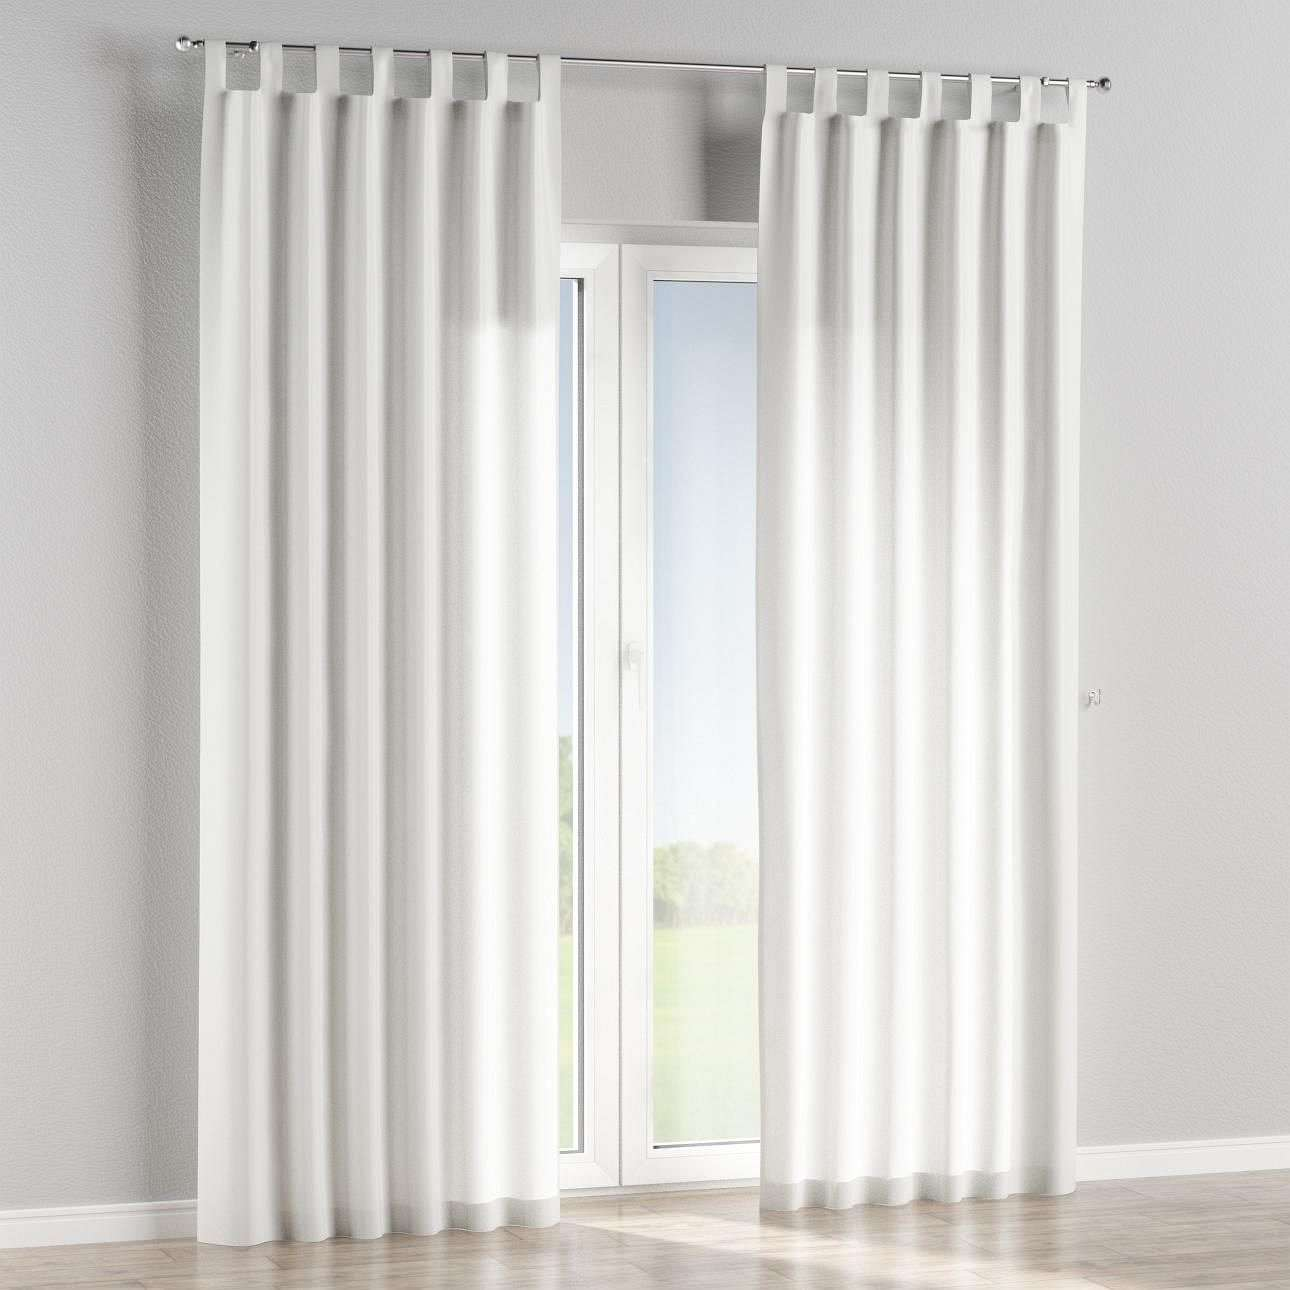 Tab top curtains in collection Rustica, fabric: 138-10